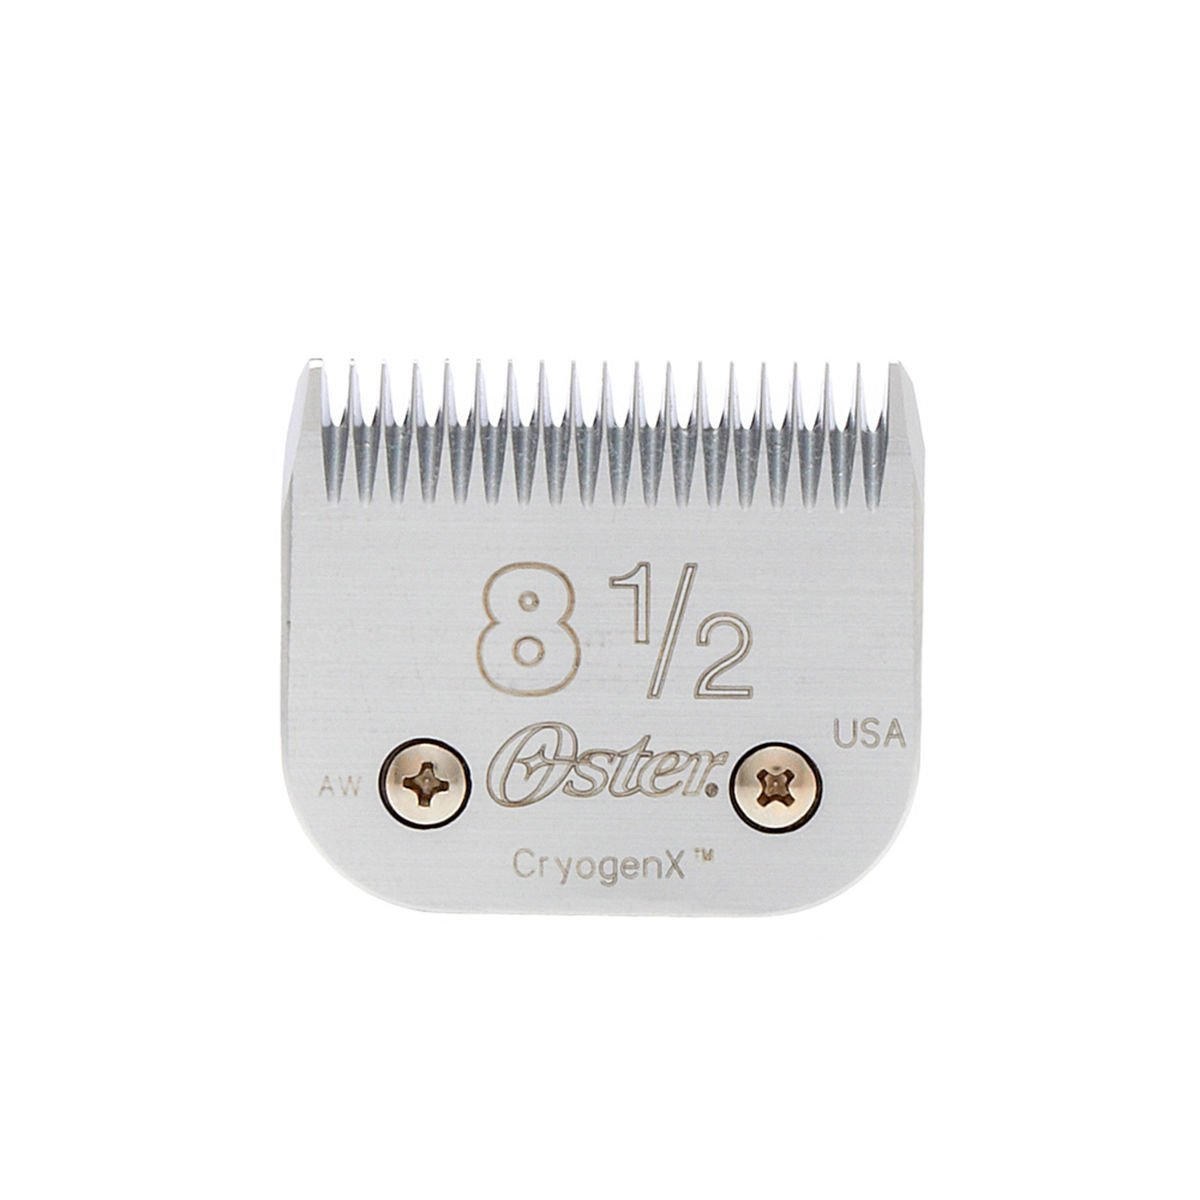 Oster CryogenX Professional Animal Clipper Blade, Size 8-1/2 (078919-146-005)